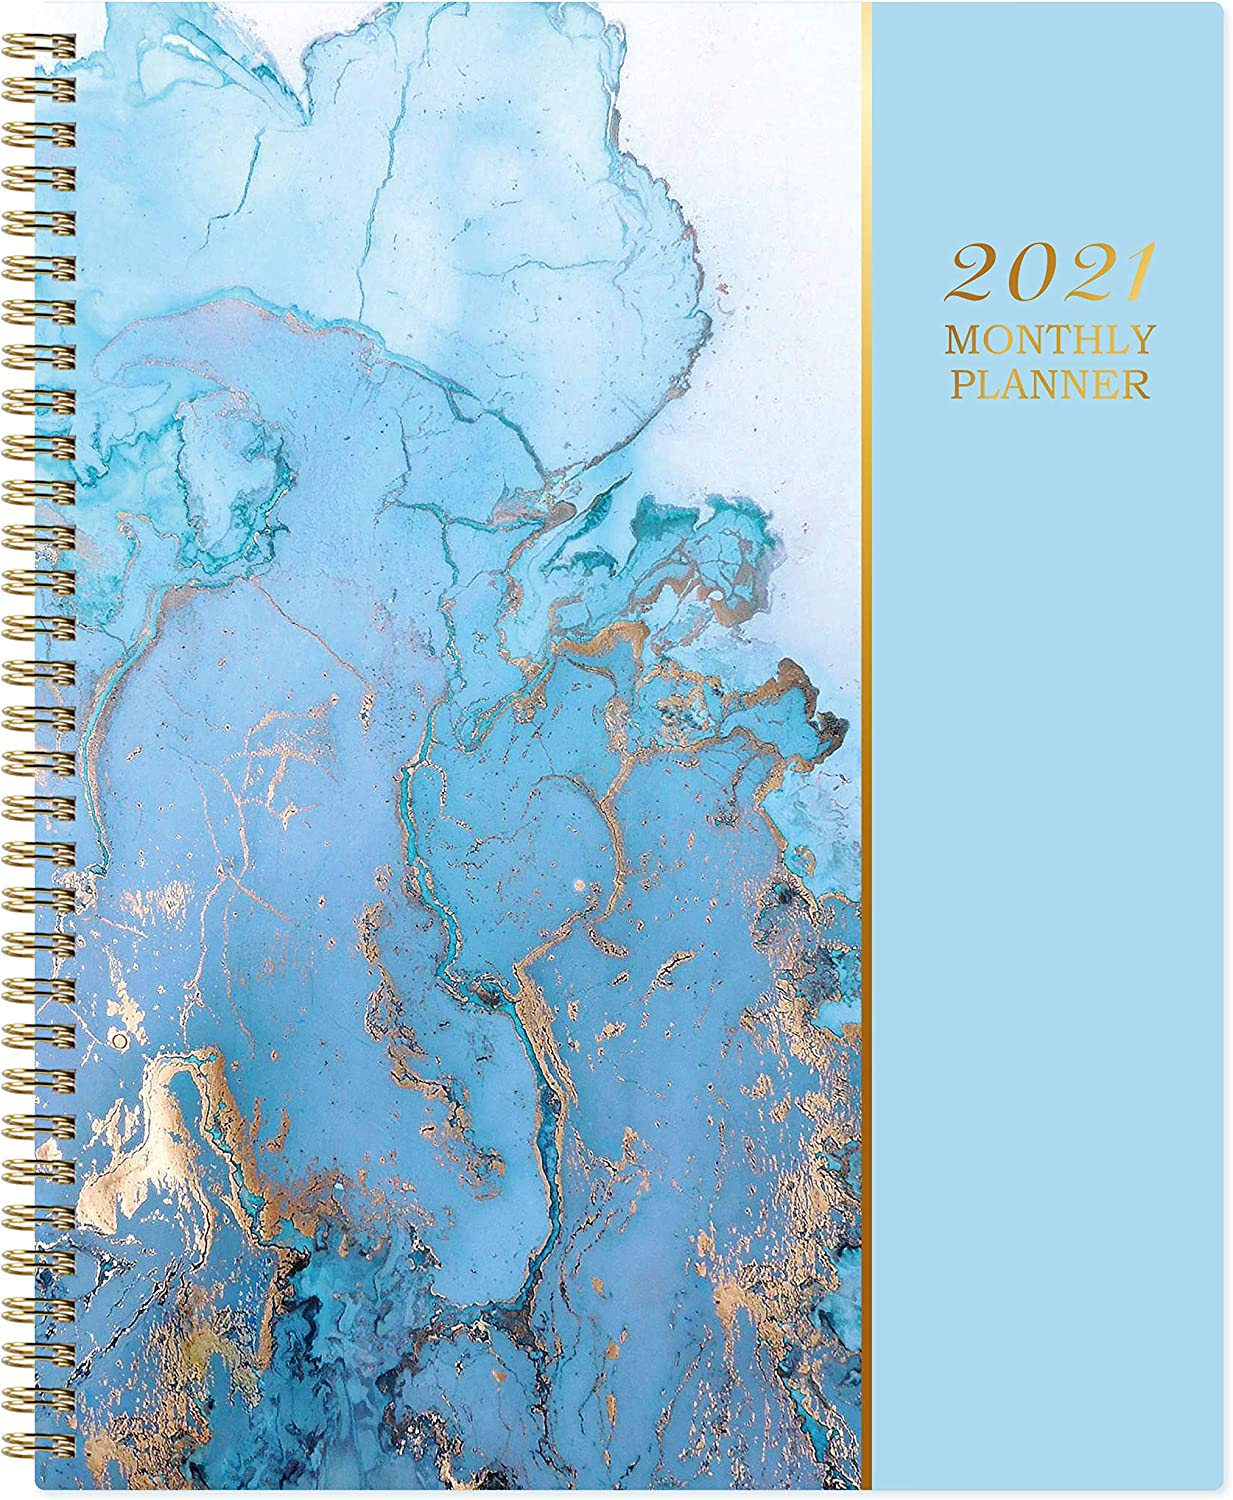 """2021 Monthly Planner - 12-Month Planner with Tabs & Pocket & Label, Contacts and Passwords, 8"""" x 10"""", Thick Paper, Jan. - Dec. 2021, Twin-Wire Binding - Gilding by Artfan"""